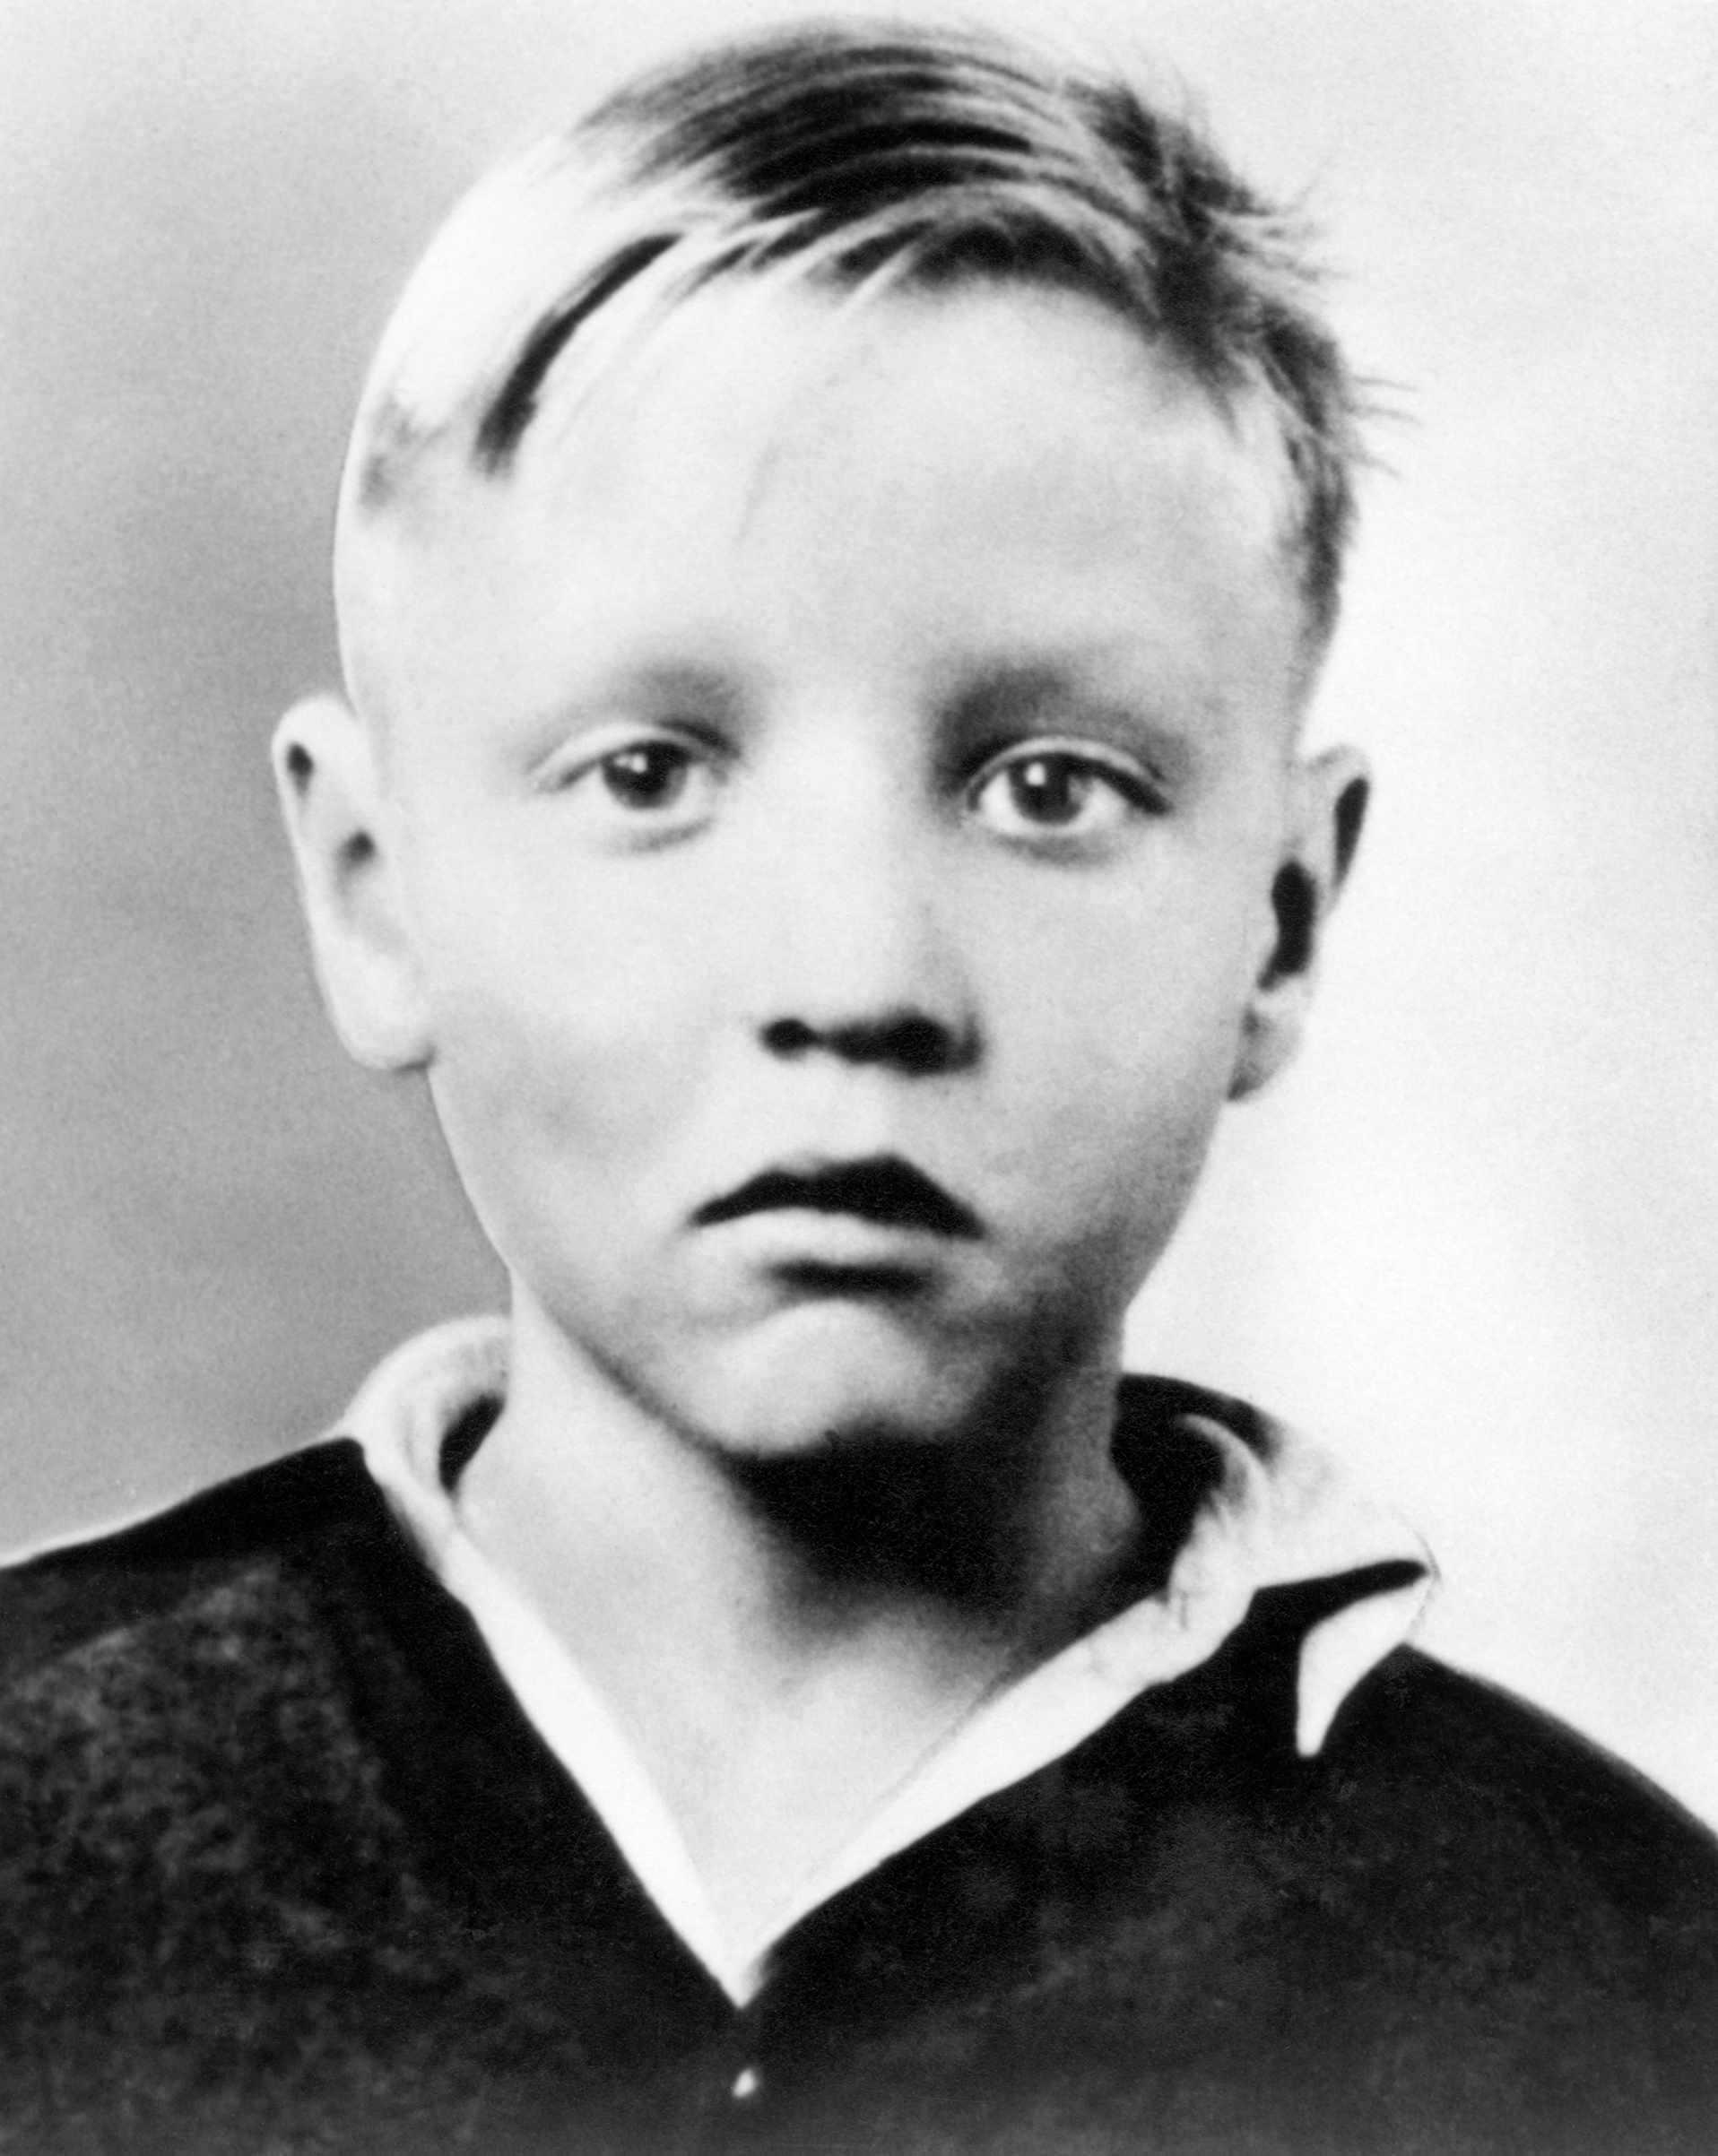 Elvis as a child in early 1940's.